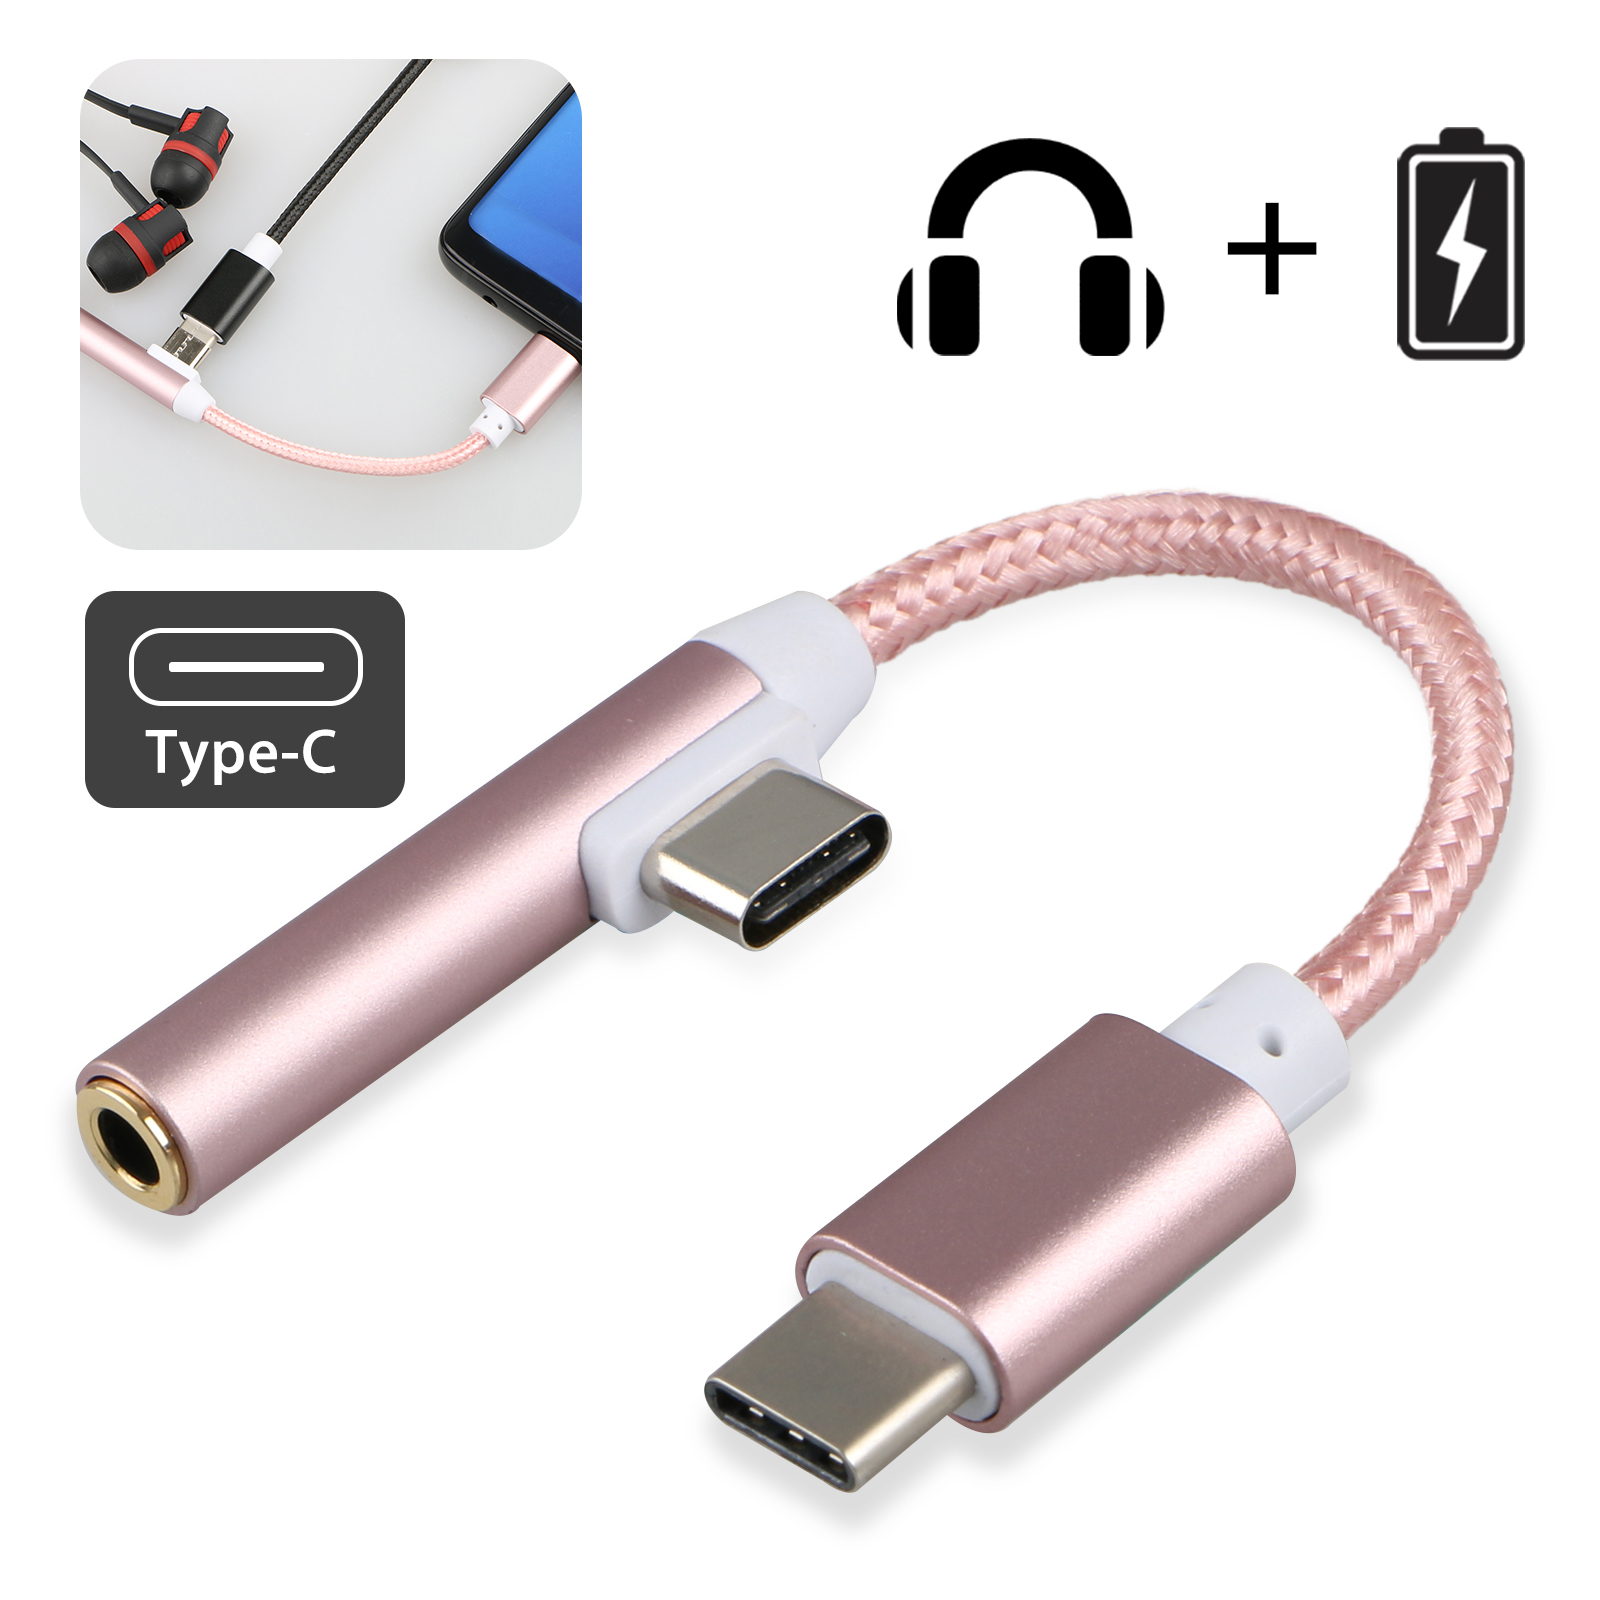 2 in 1 Type-C 3.5mm Audio Jack Cable, USB-C Jack Audio Adapter, Headphone Charger Converter Supports Audio and Charging Cord Cable for Samsung Motorola Oneplus (Rose Gold)